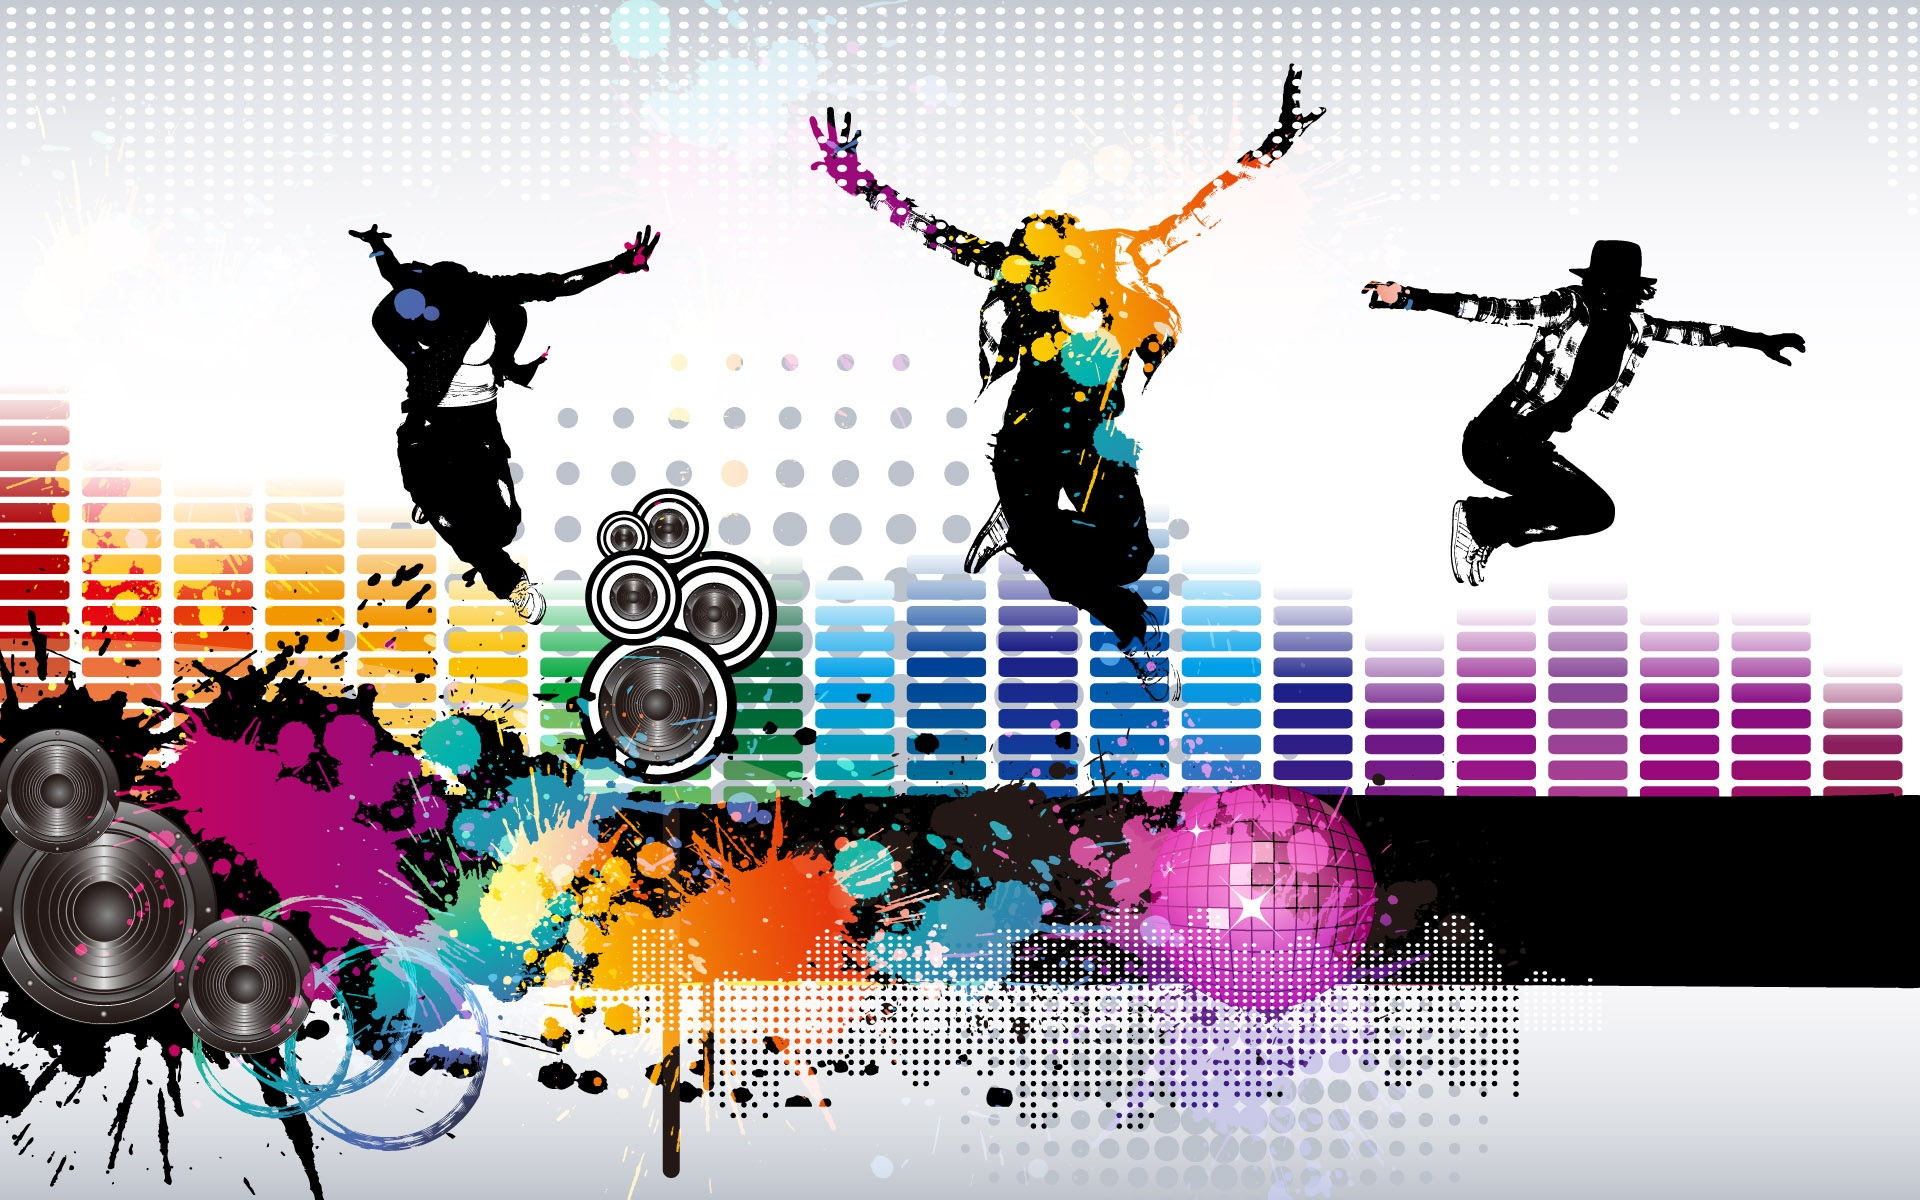 Colorful-music-fly-vector_1920x1200.jpg